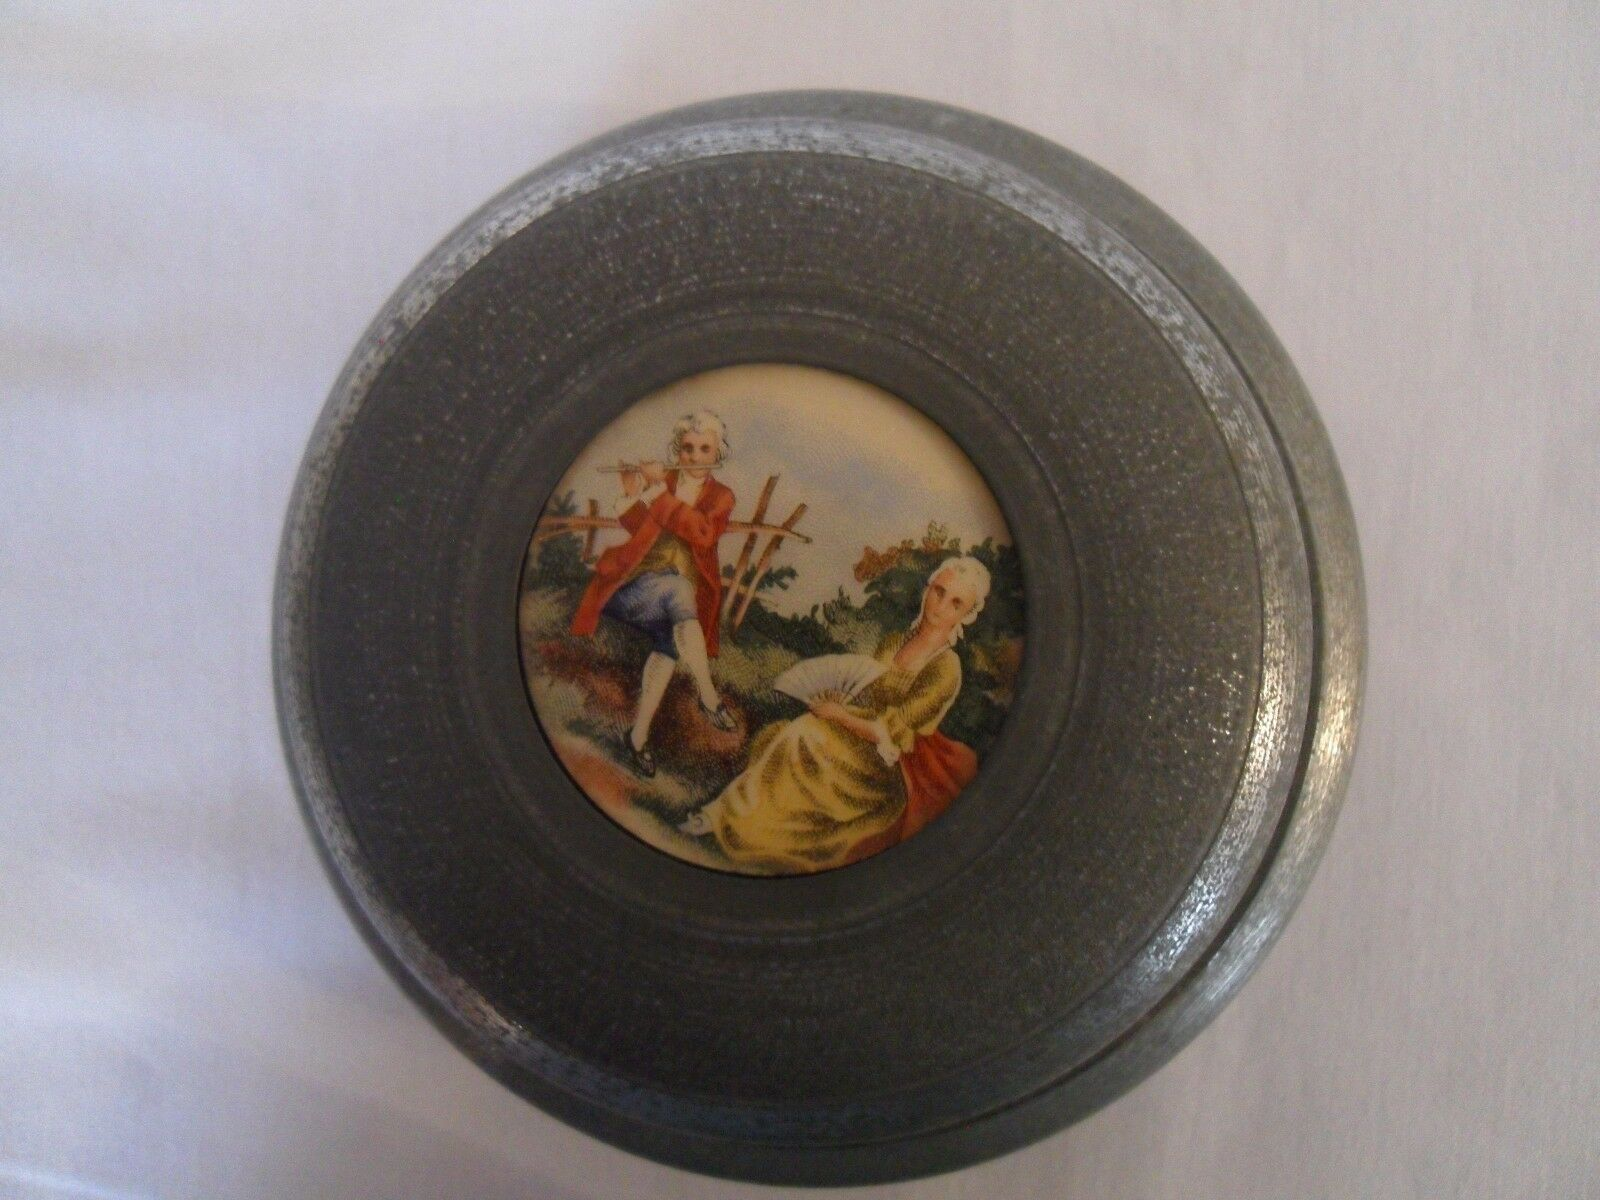 ANTIQUE FRENCH ARISTO MUSIX BOX WITH CAMEO FRAGONARG DECOR - $86.00